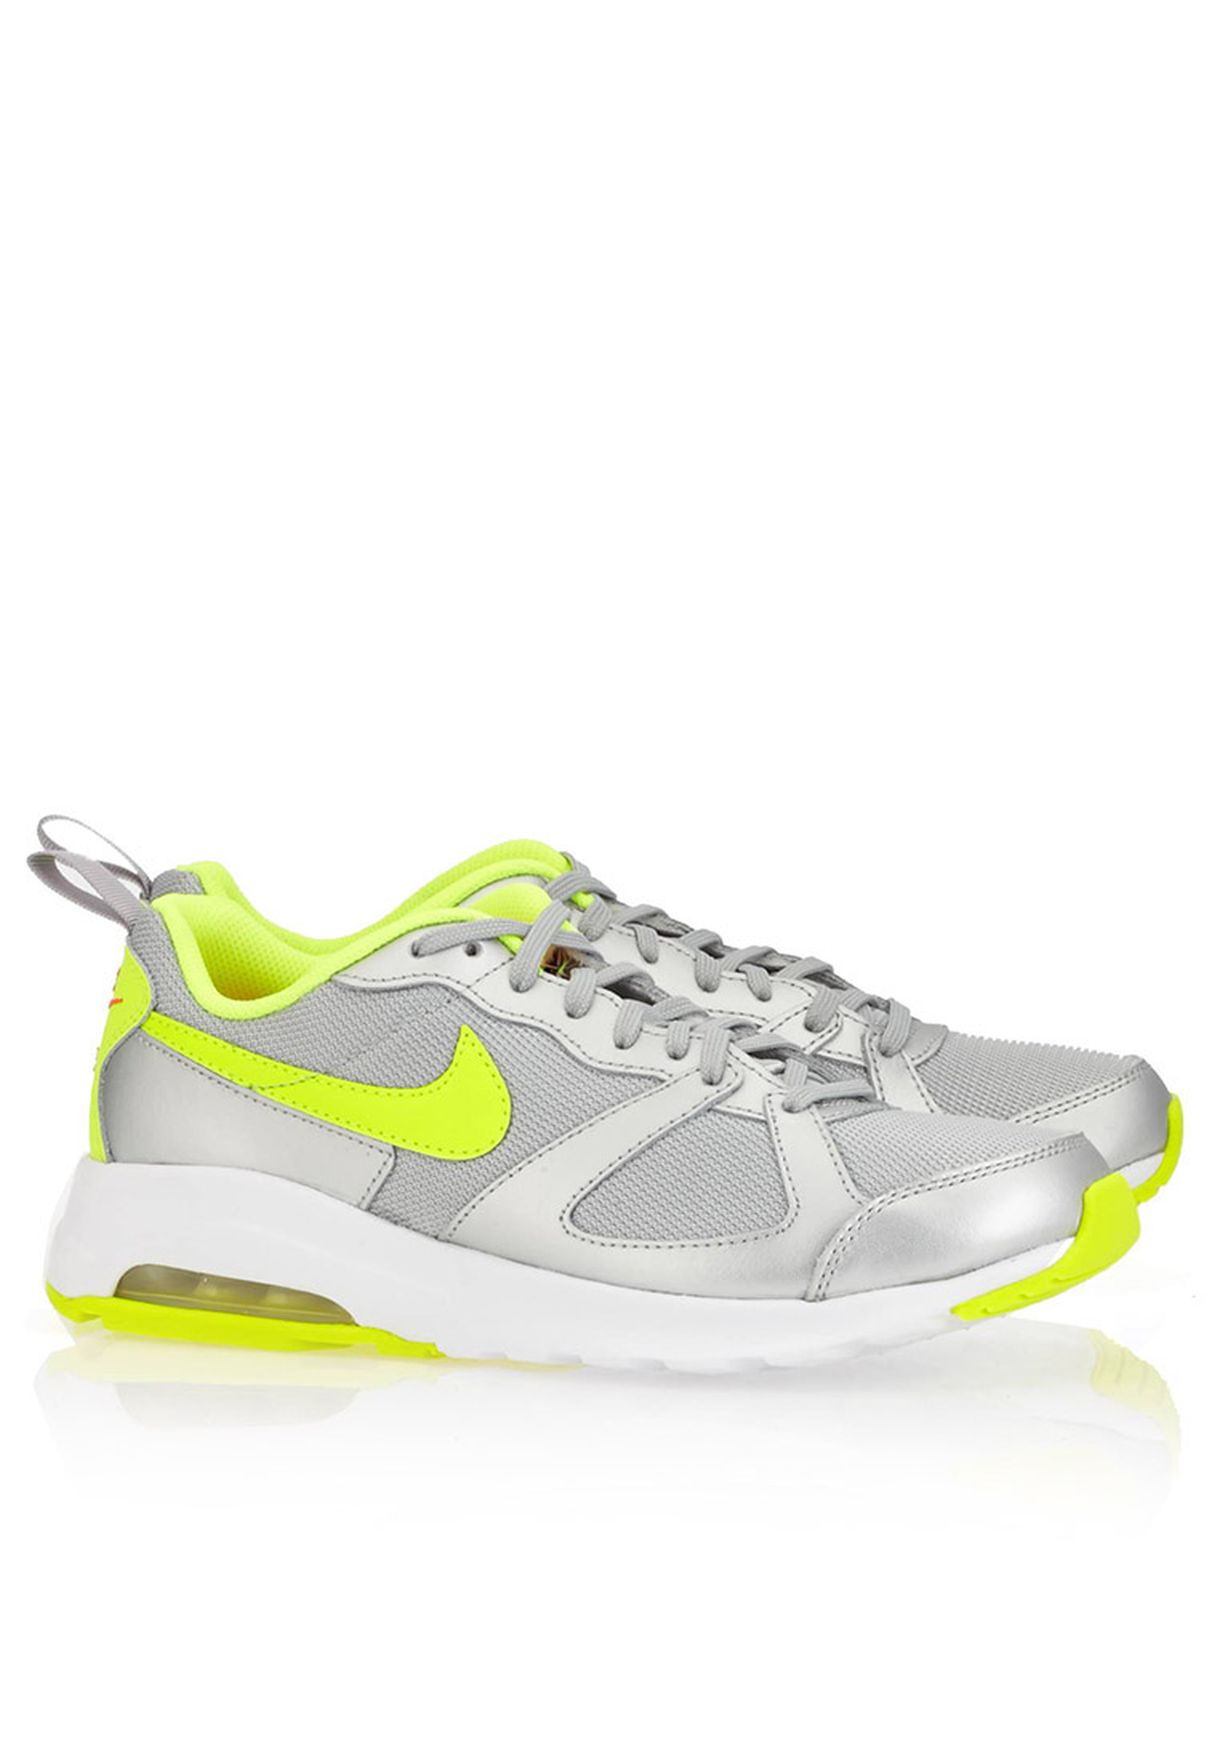 Max Femme in Muse Nike 654729 071 Shop for Air silver Qatar aFZ7OxqS